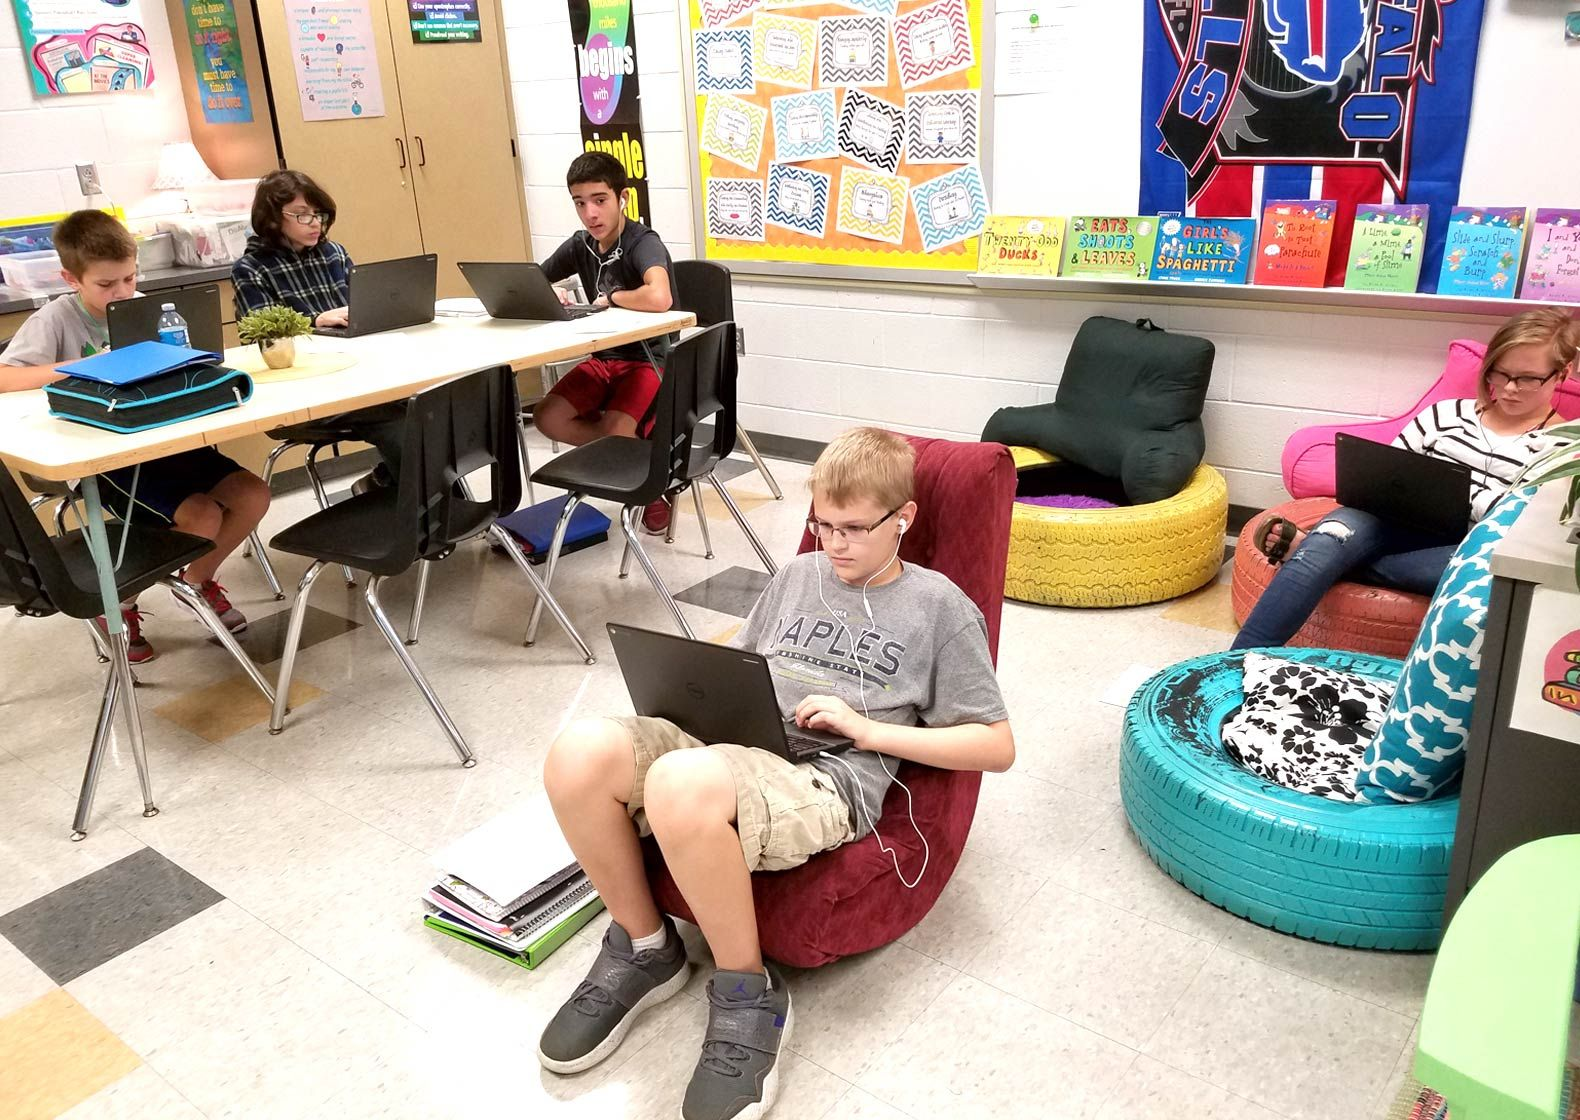 A student uses the video-gaming rocker in the author's classroom.